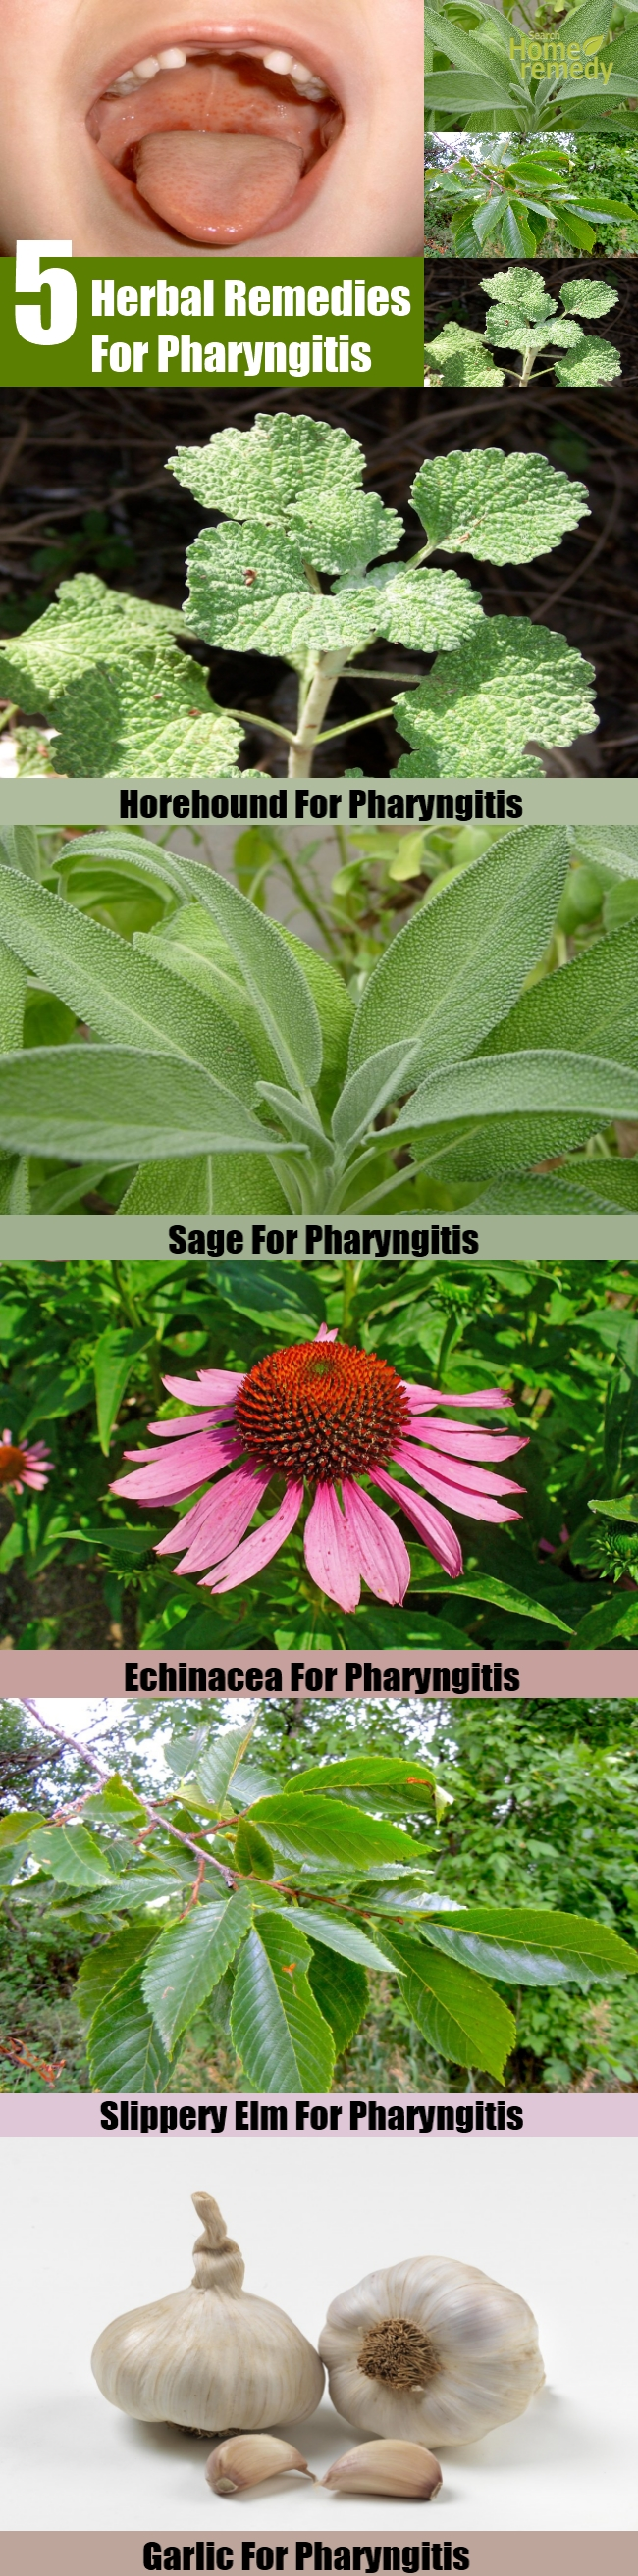 5 Excellent Herbal Remedies For Pharyngitis